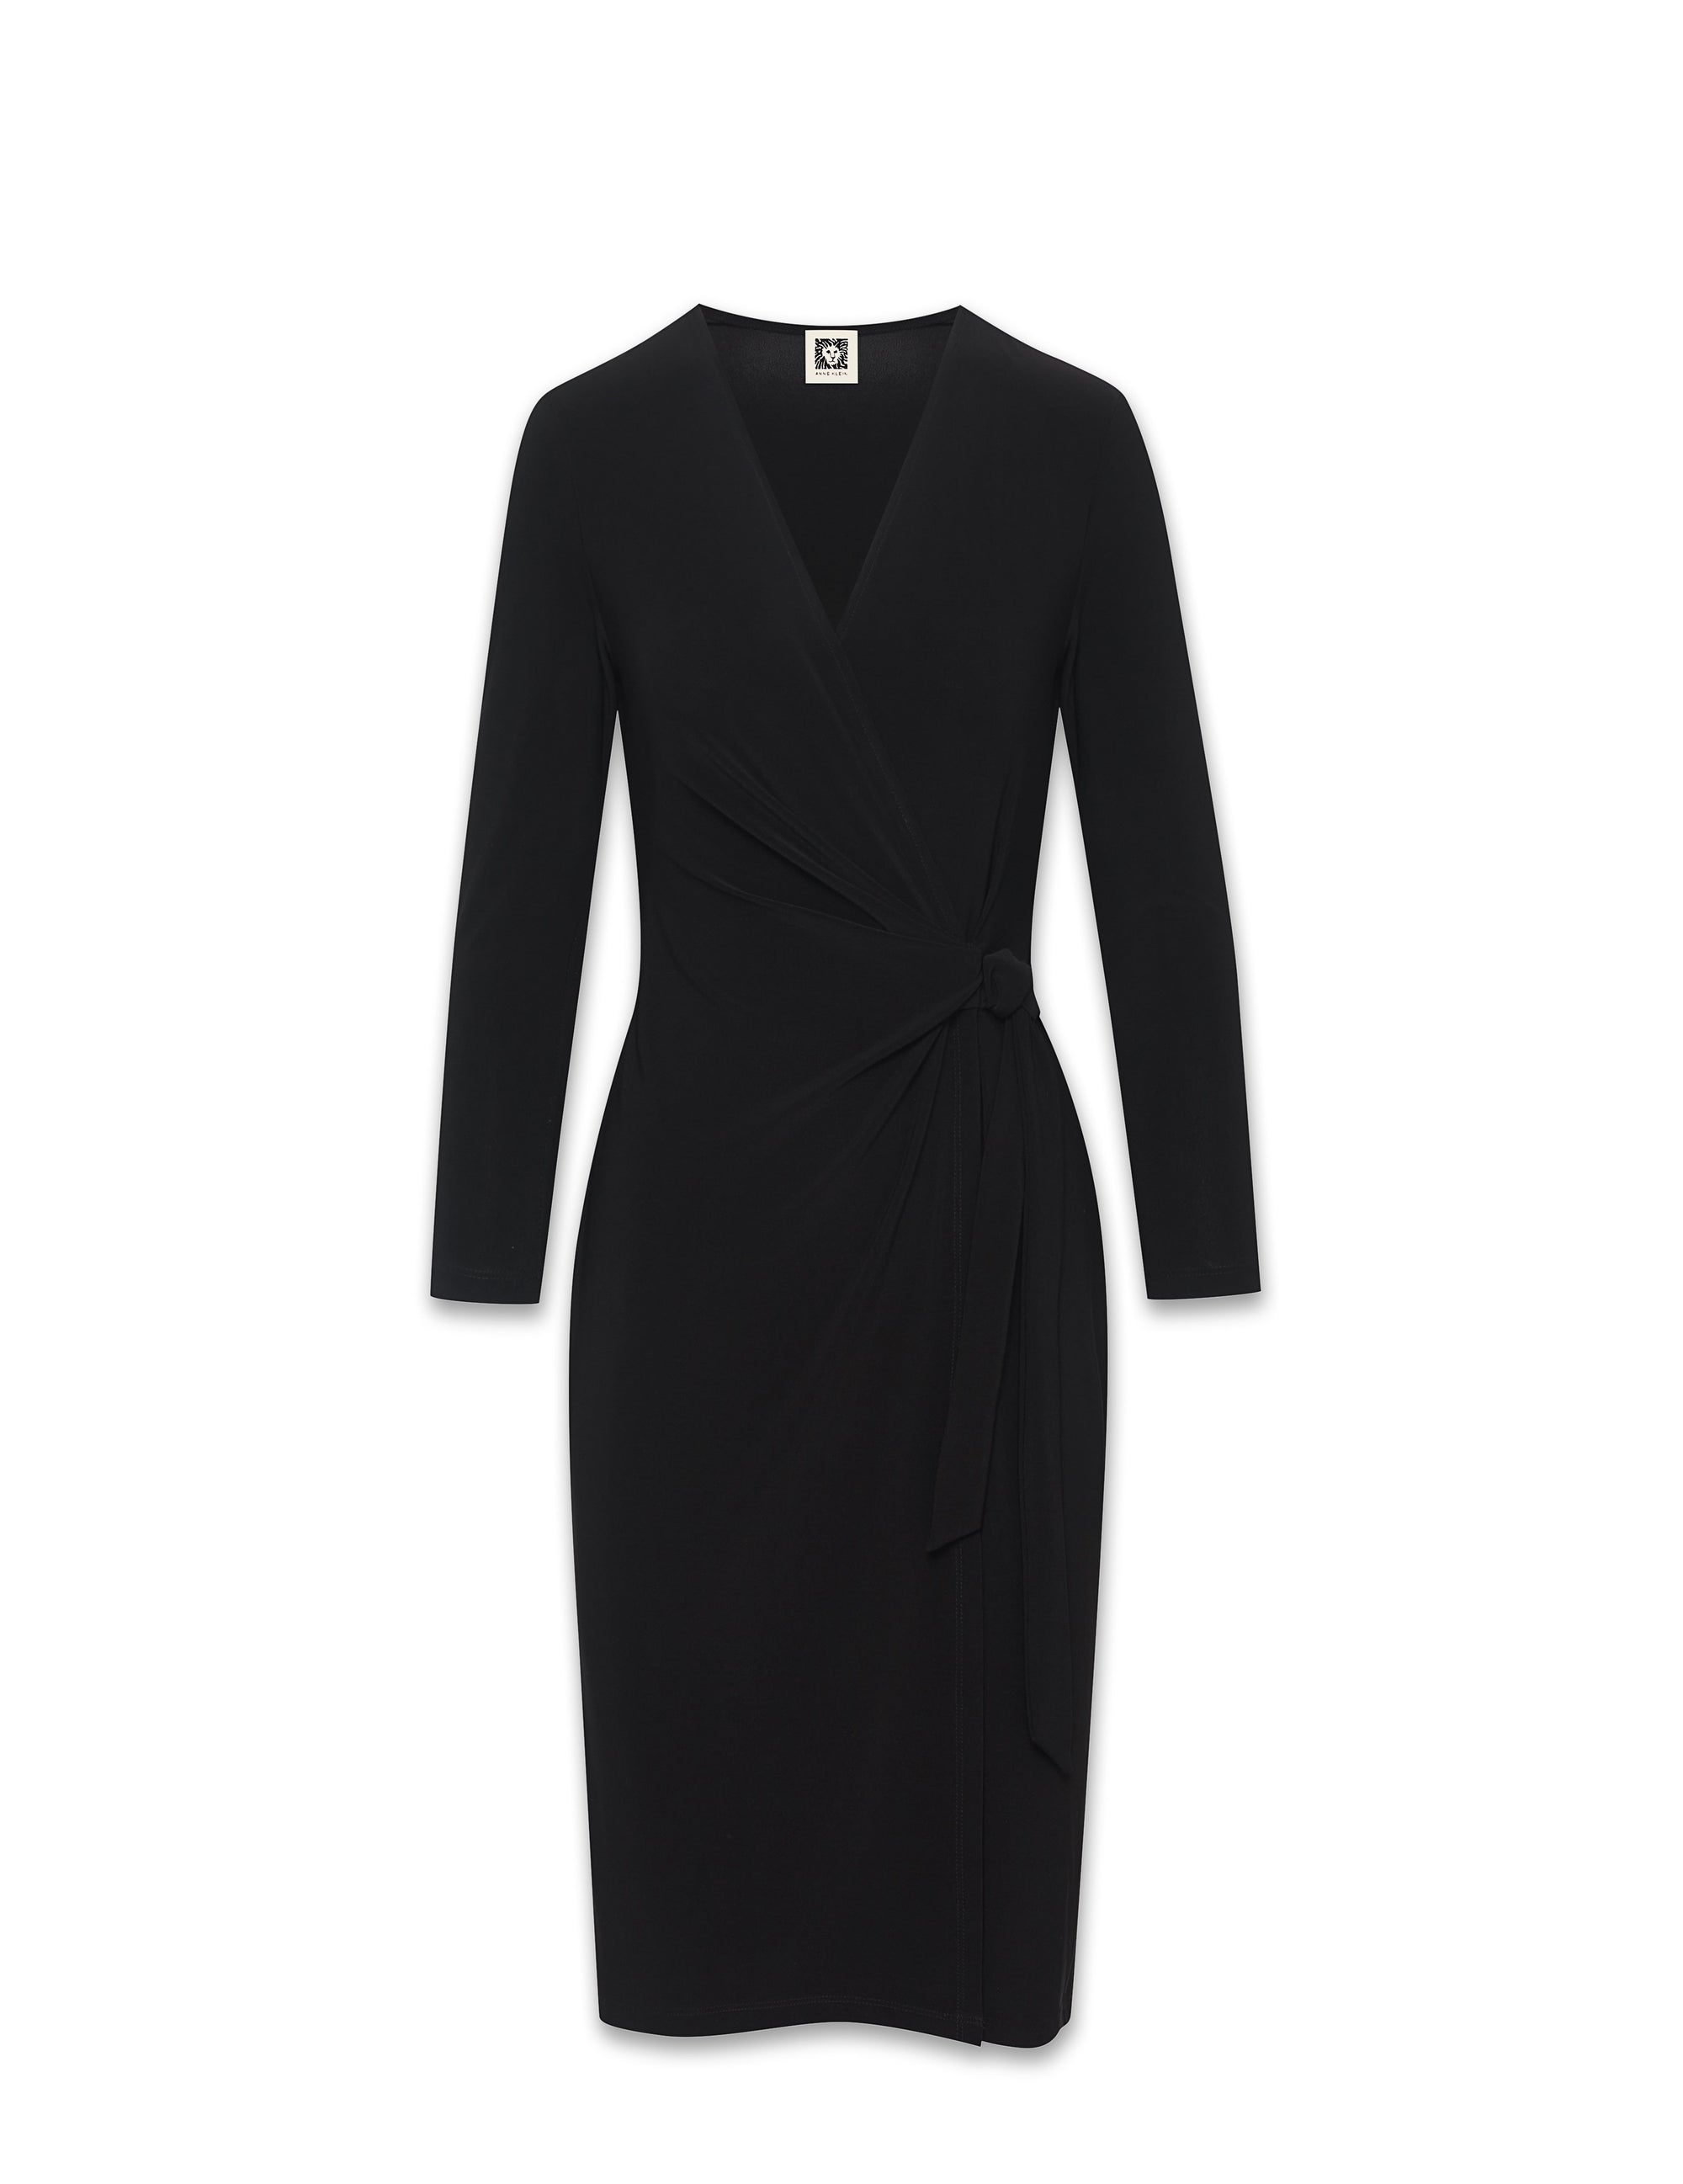 Anne Klein Black Faux Wrap Dress